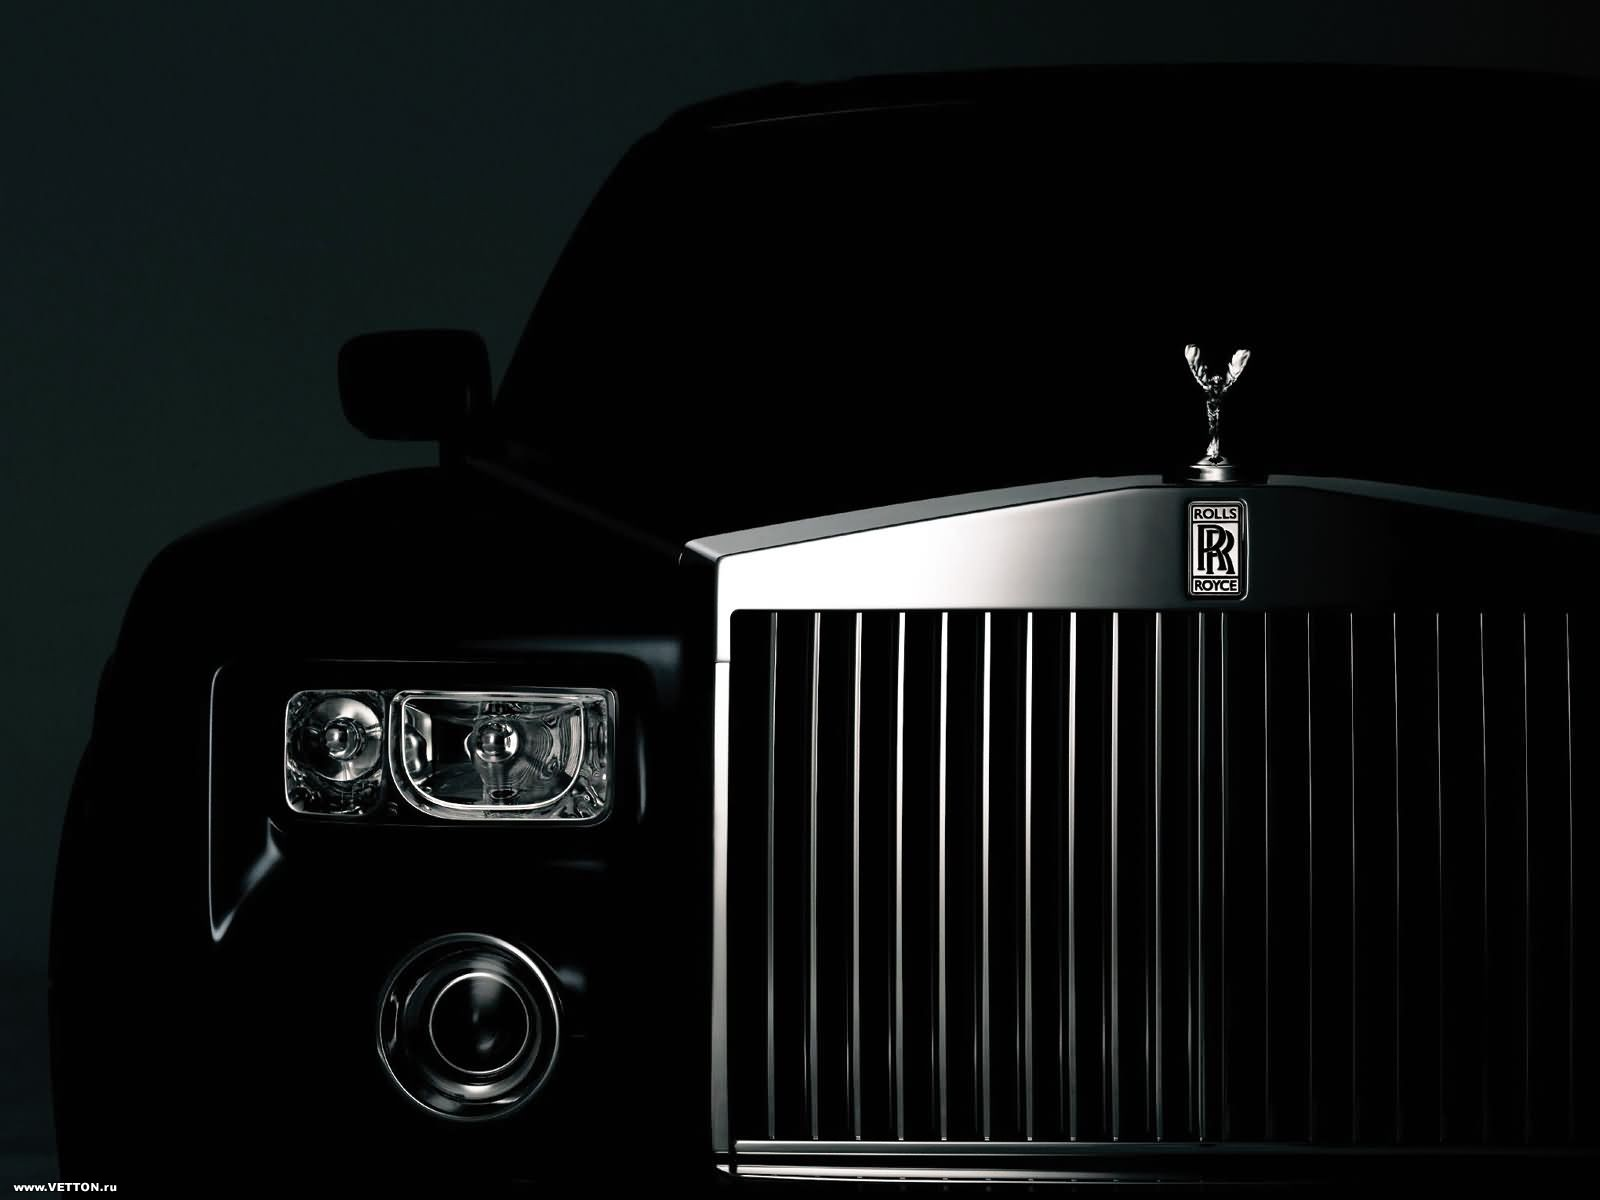 Rolls Royce Hd Computer Backgrounds Free Cool Car Wallpapers For